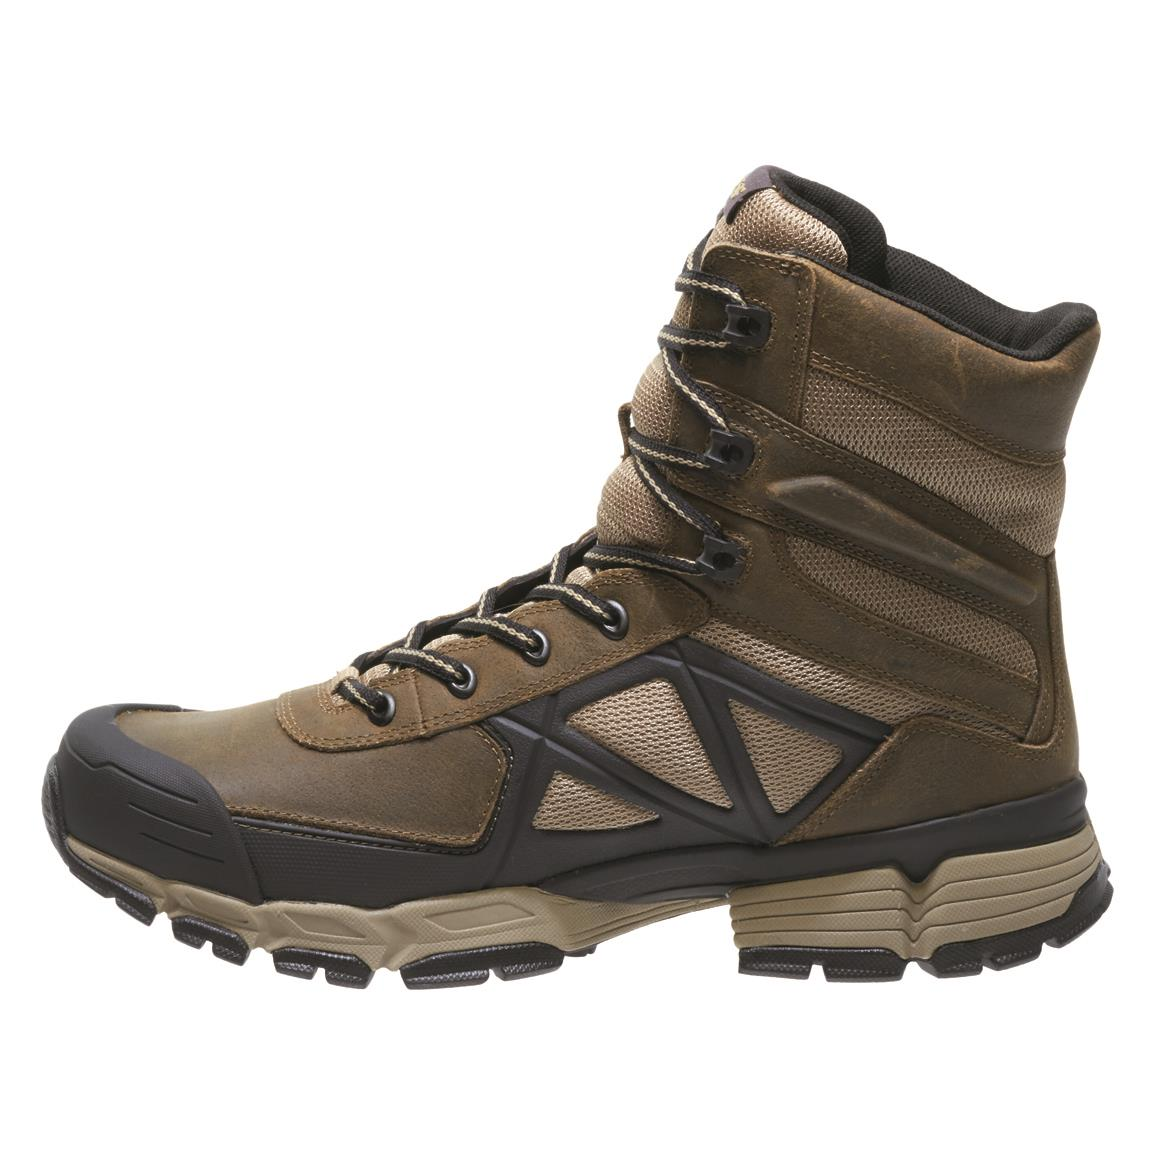 Bates Men's Velocitor FX Waterproof Hiking Boots, Canteen